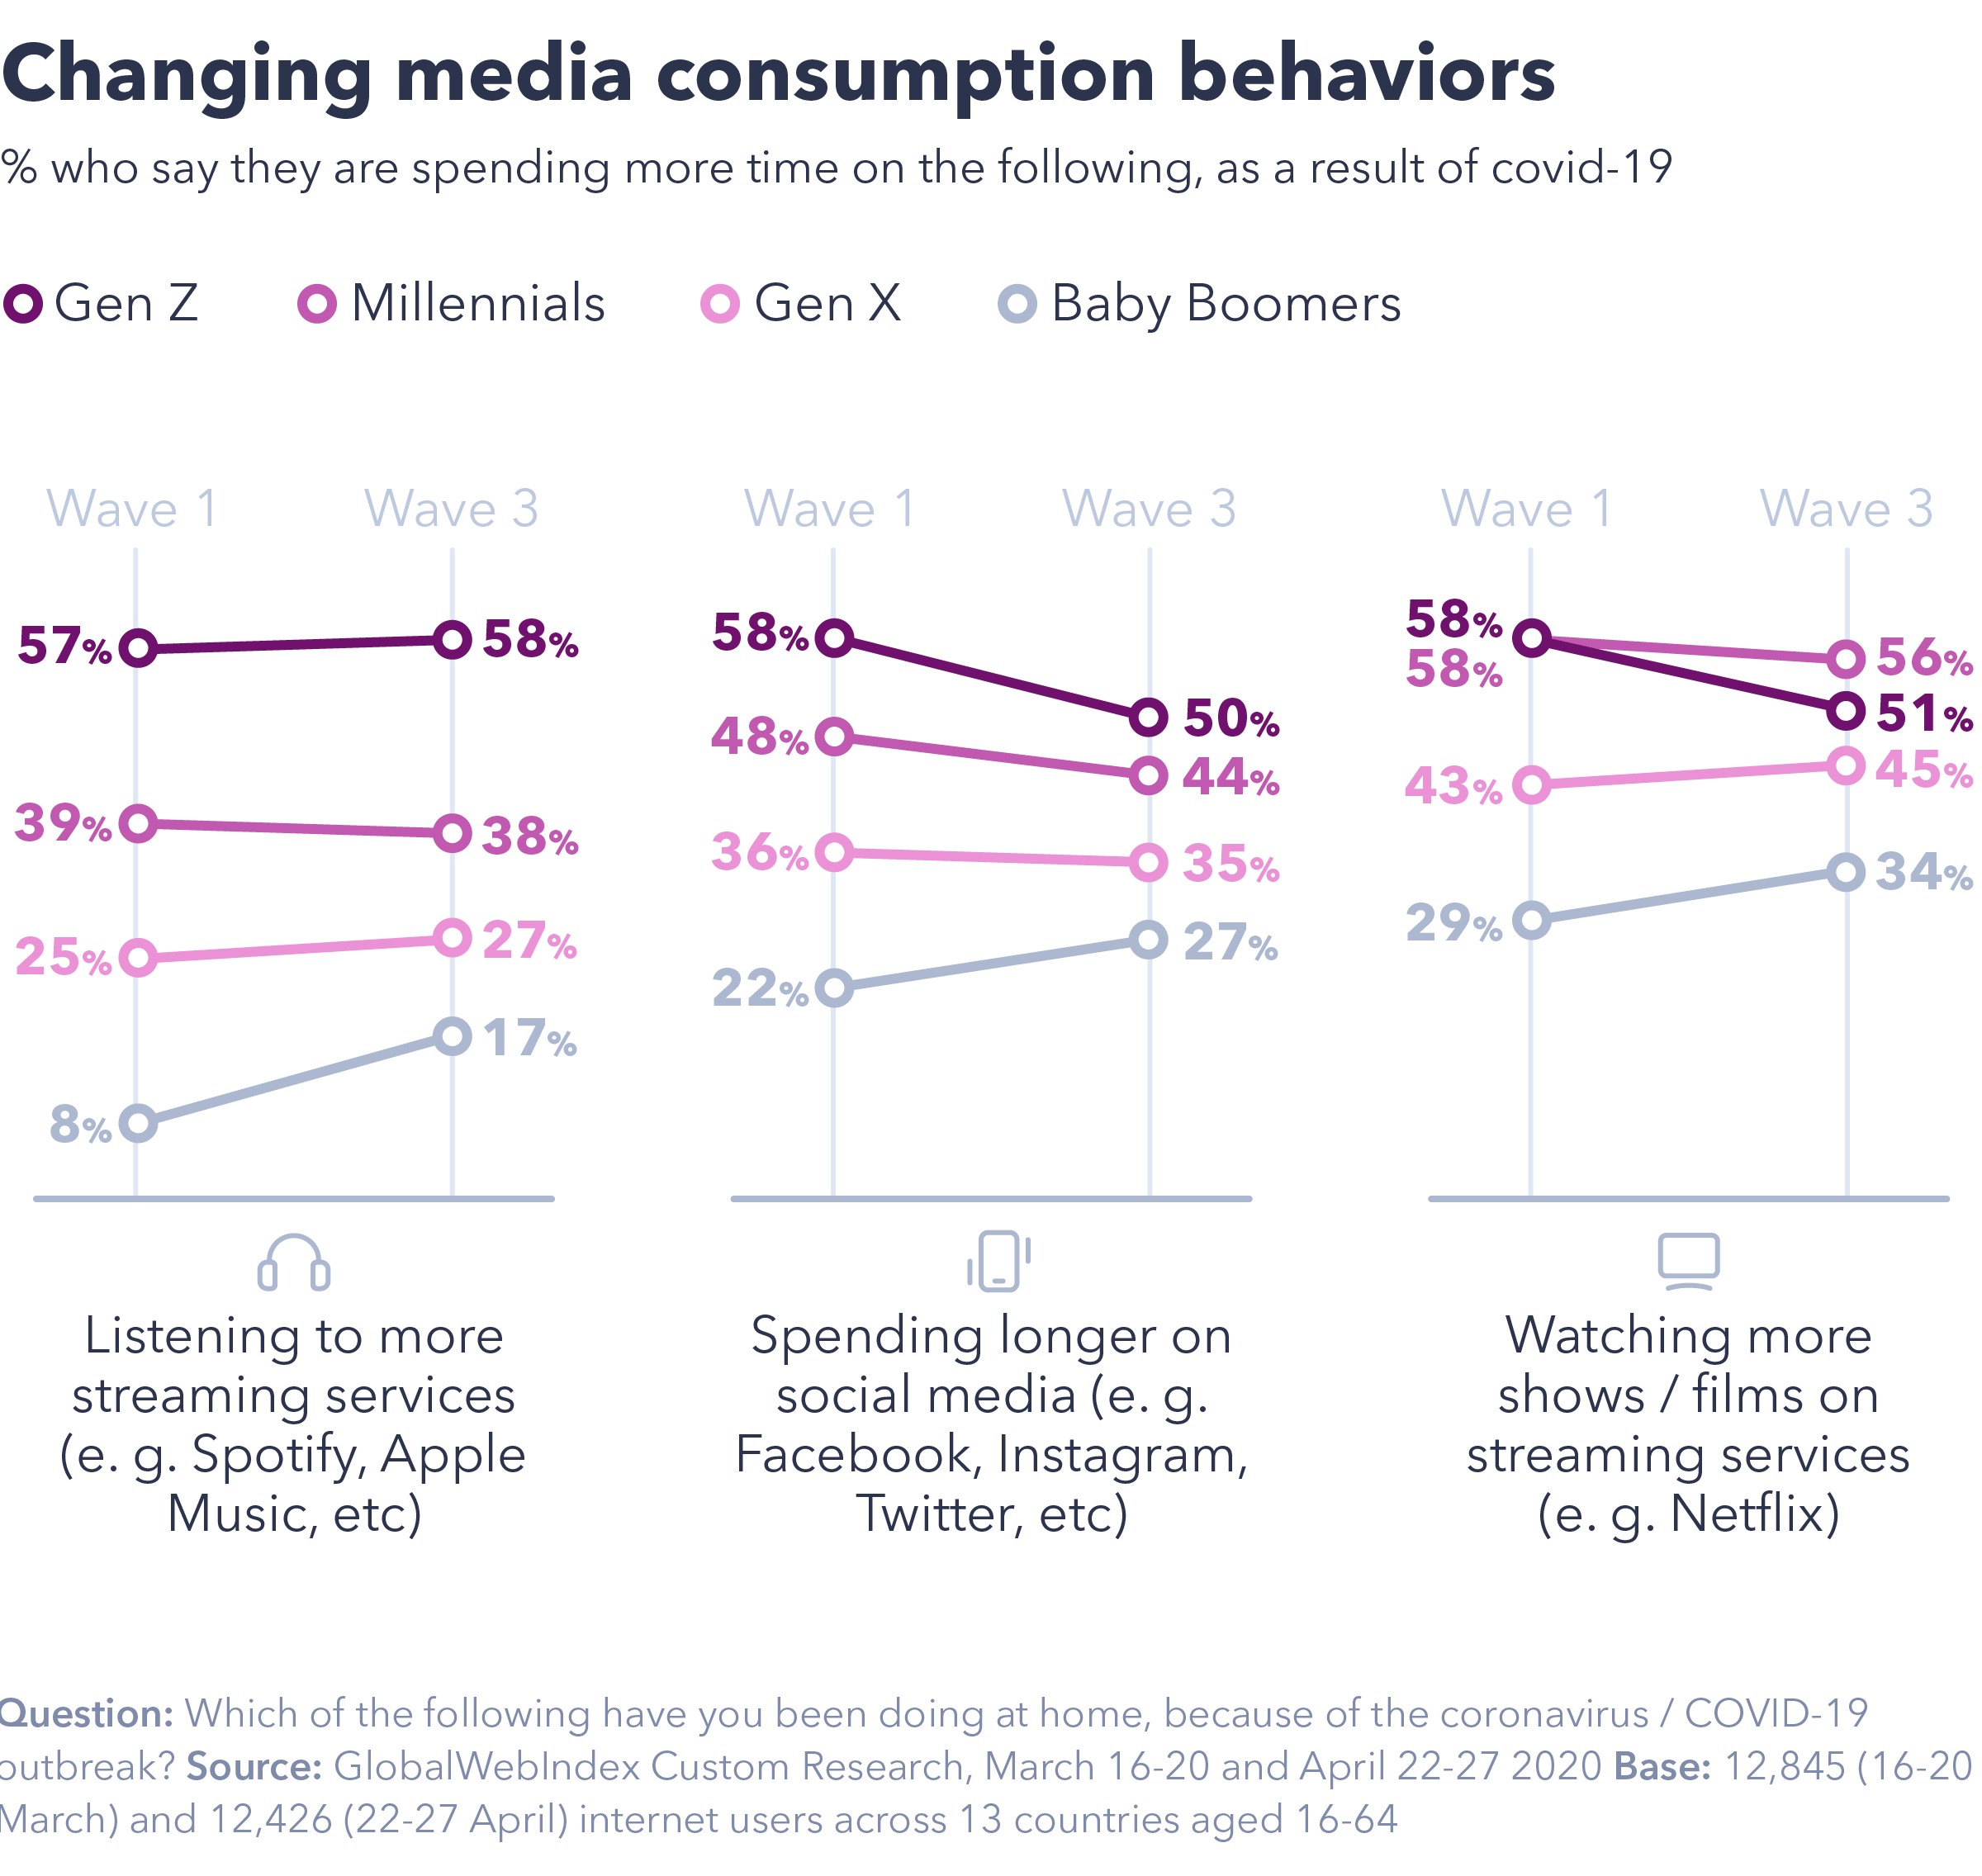 Chart showing changing media consumption behaviors